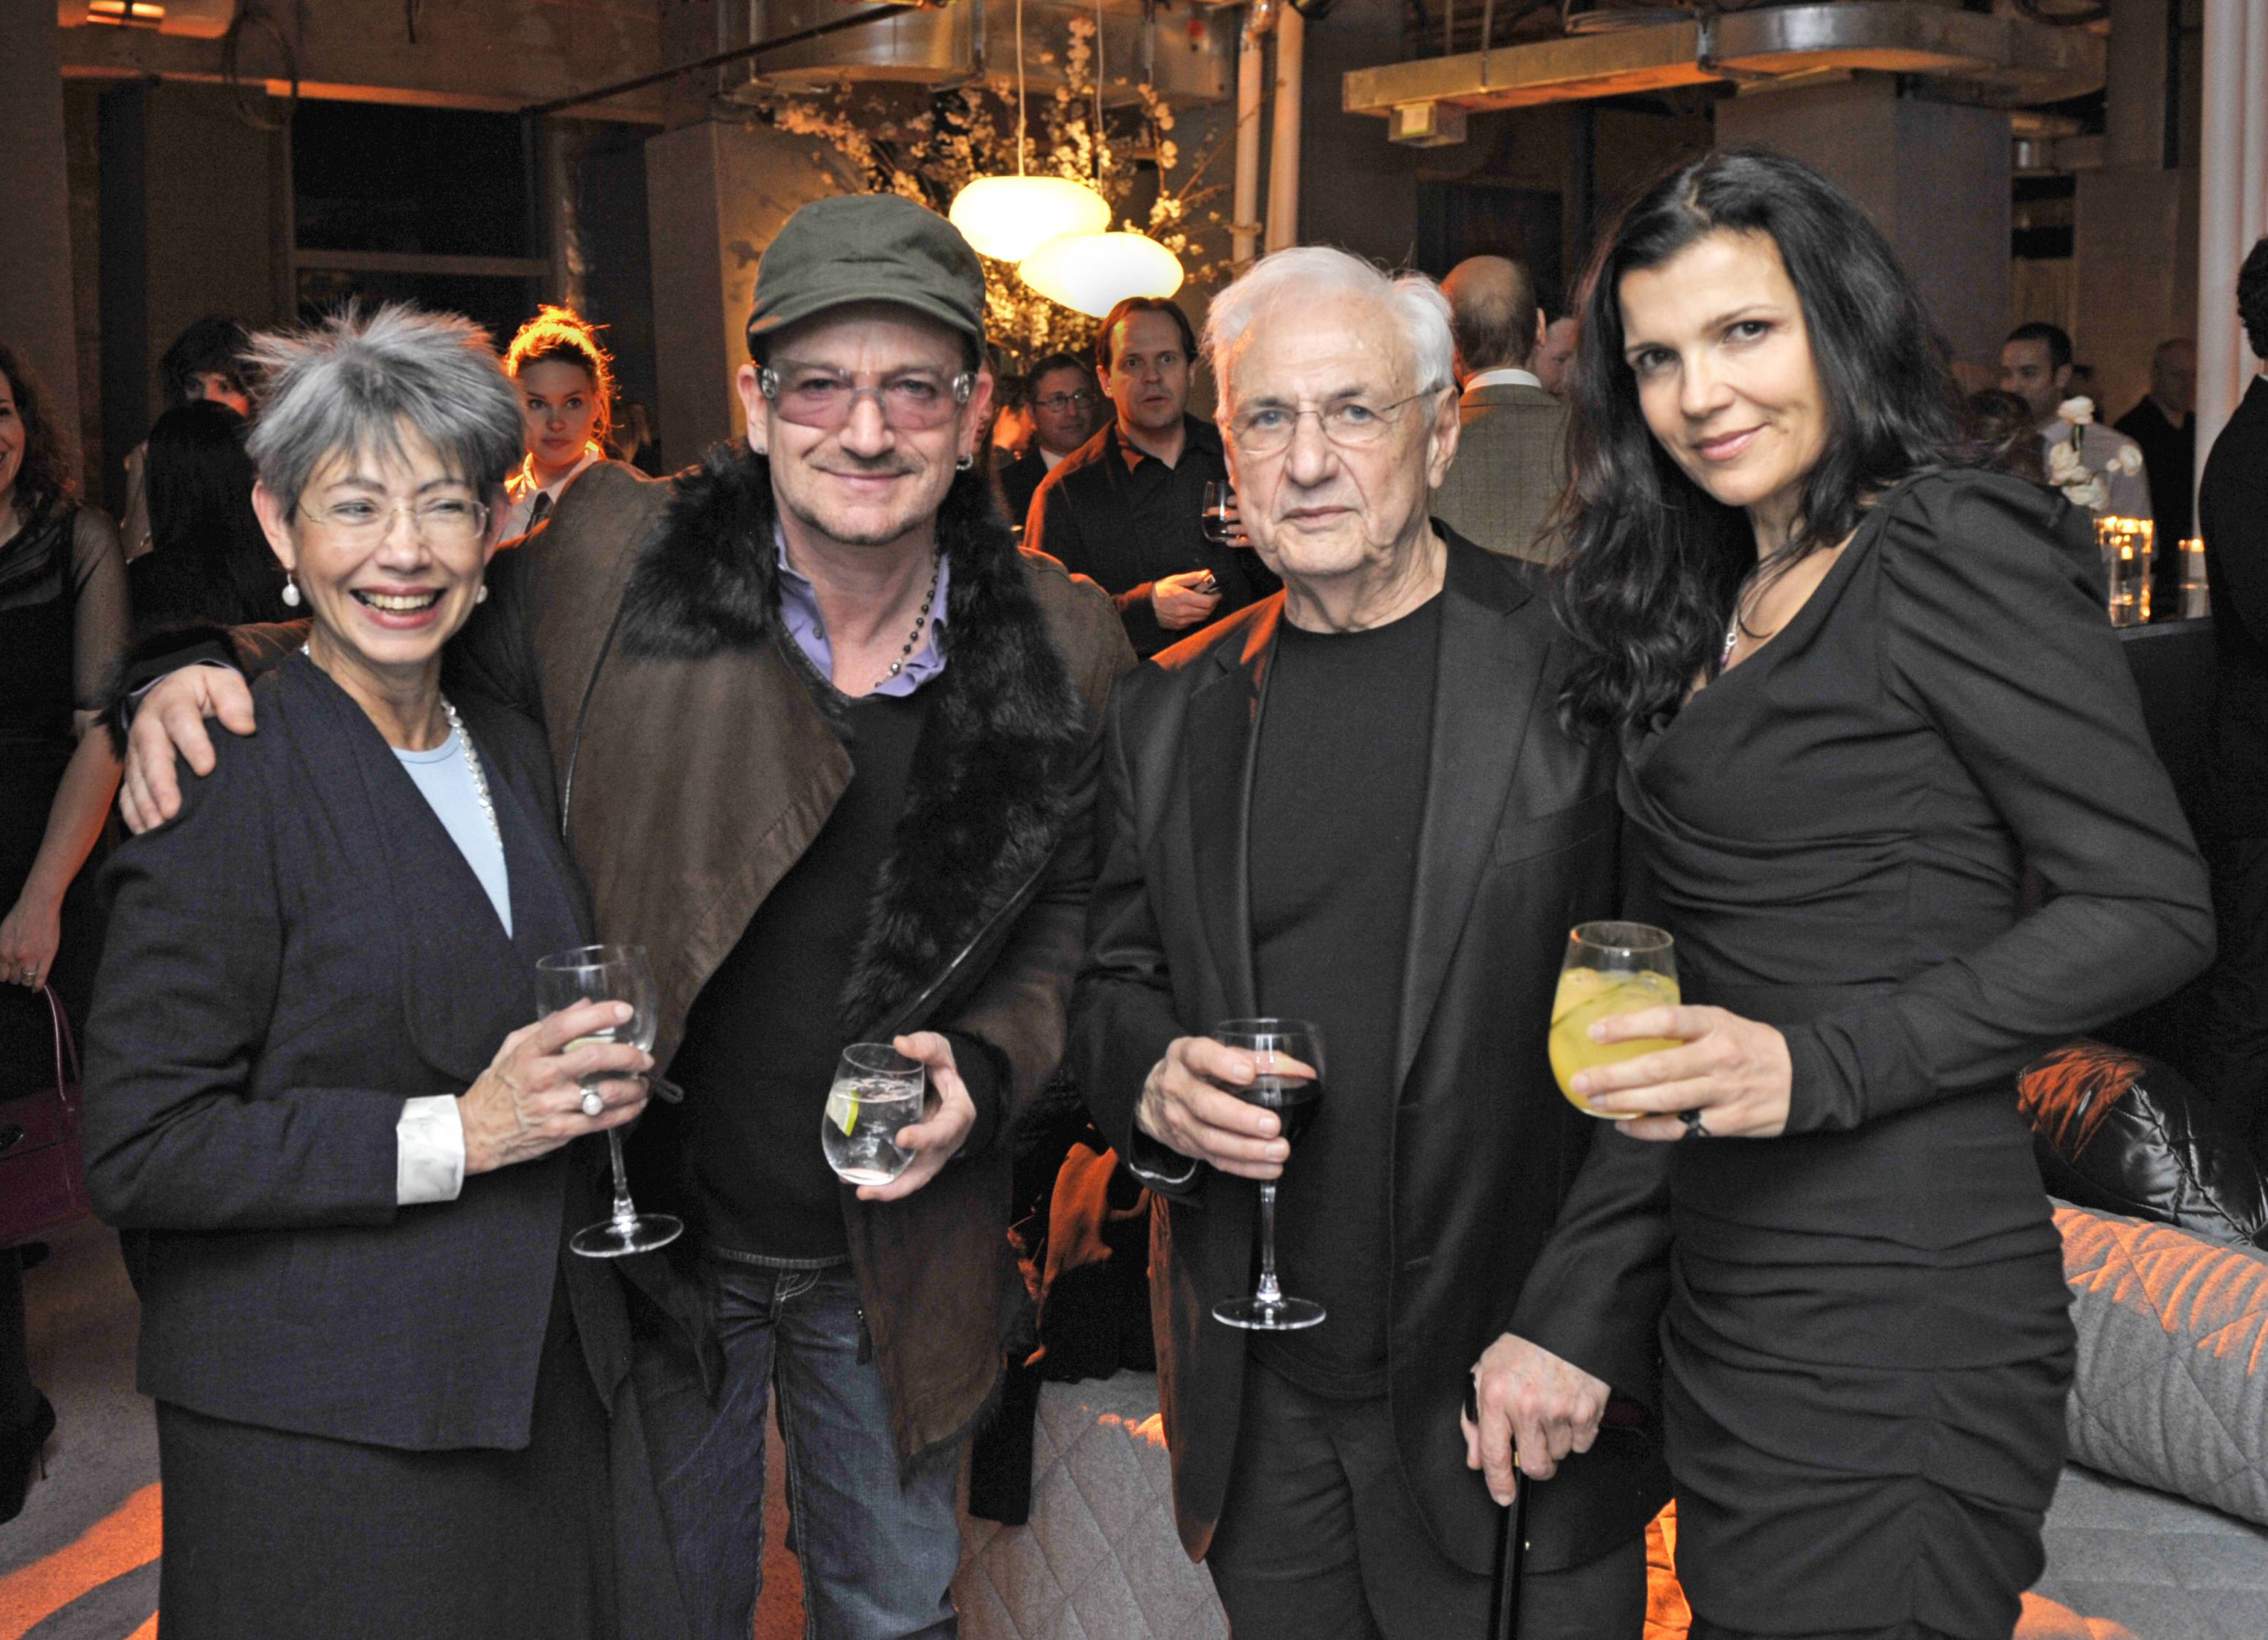 Haute Event: Architect Frank Gehry's 82nd Birthday Celebration